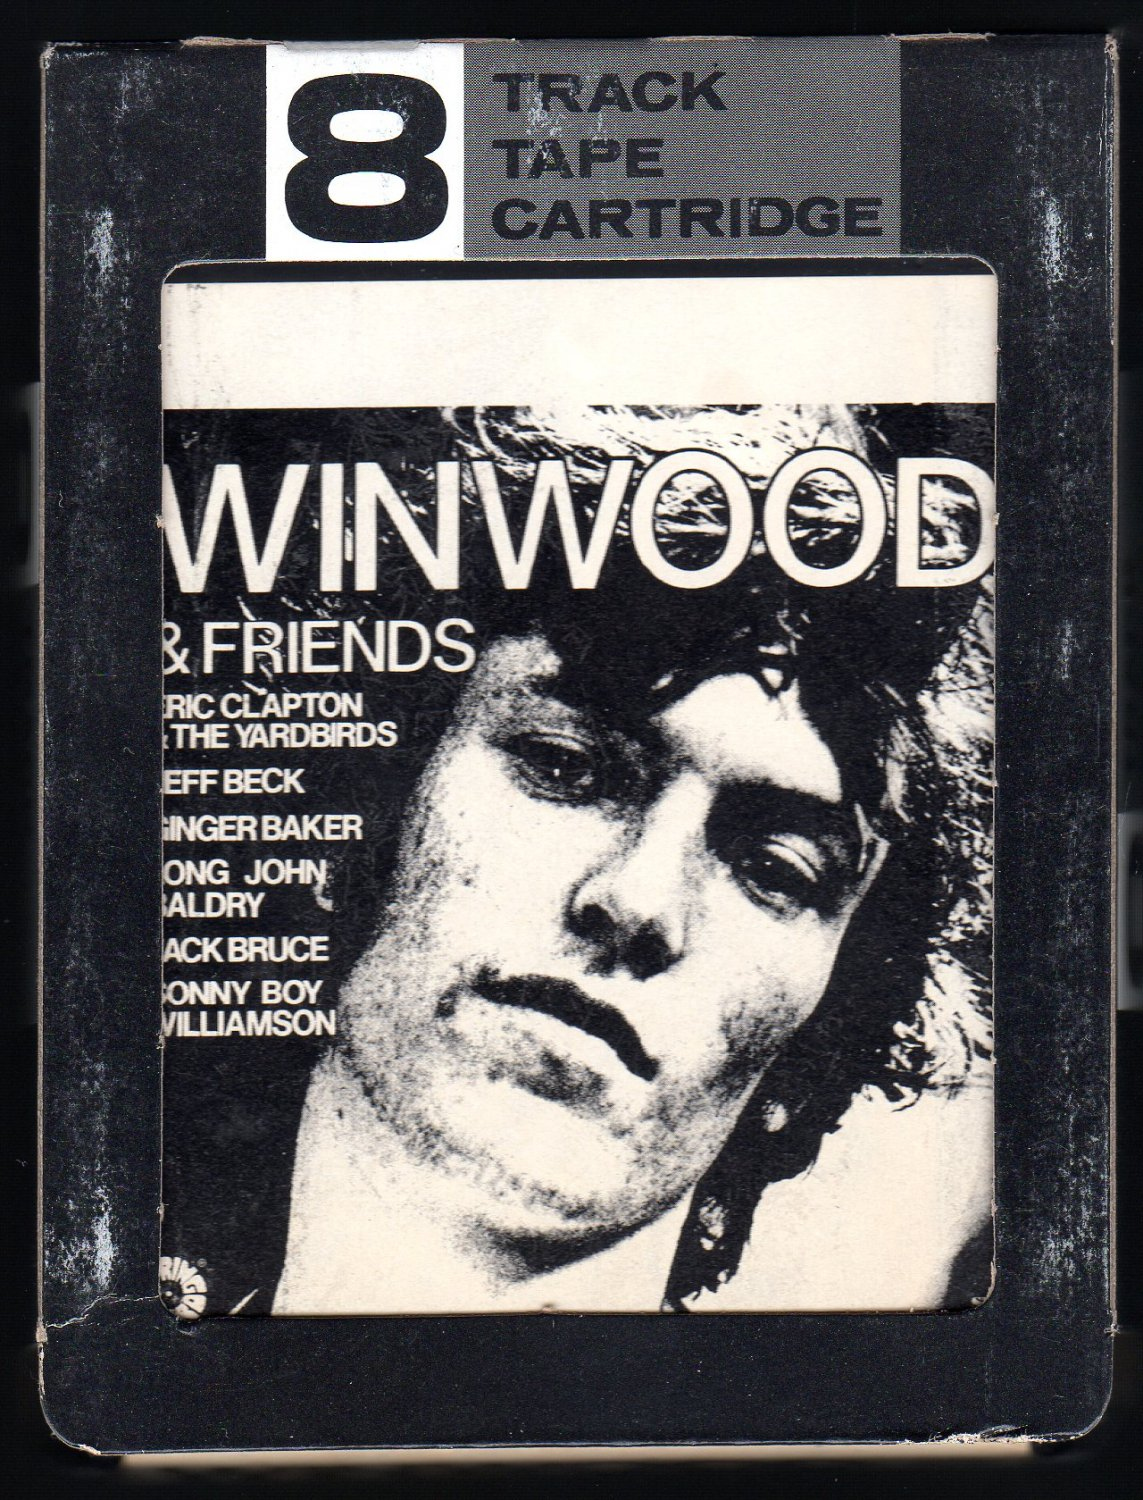 Steve Winwood - Winwood & Friends 1972 AMPEX SPRINGBOARD A39 8-TRACK TAPE